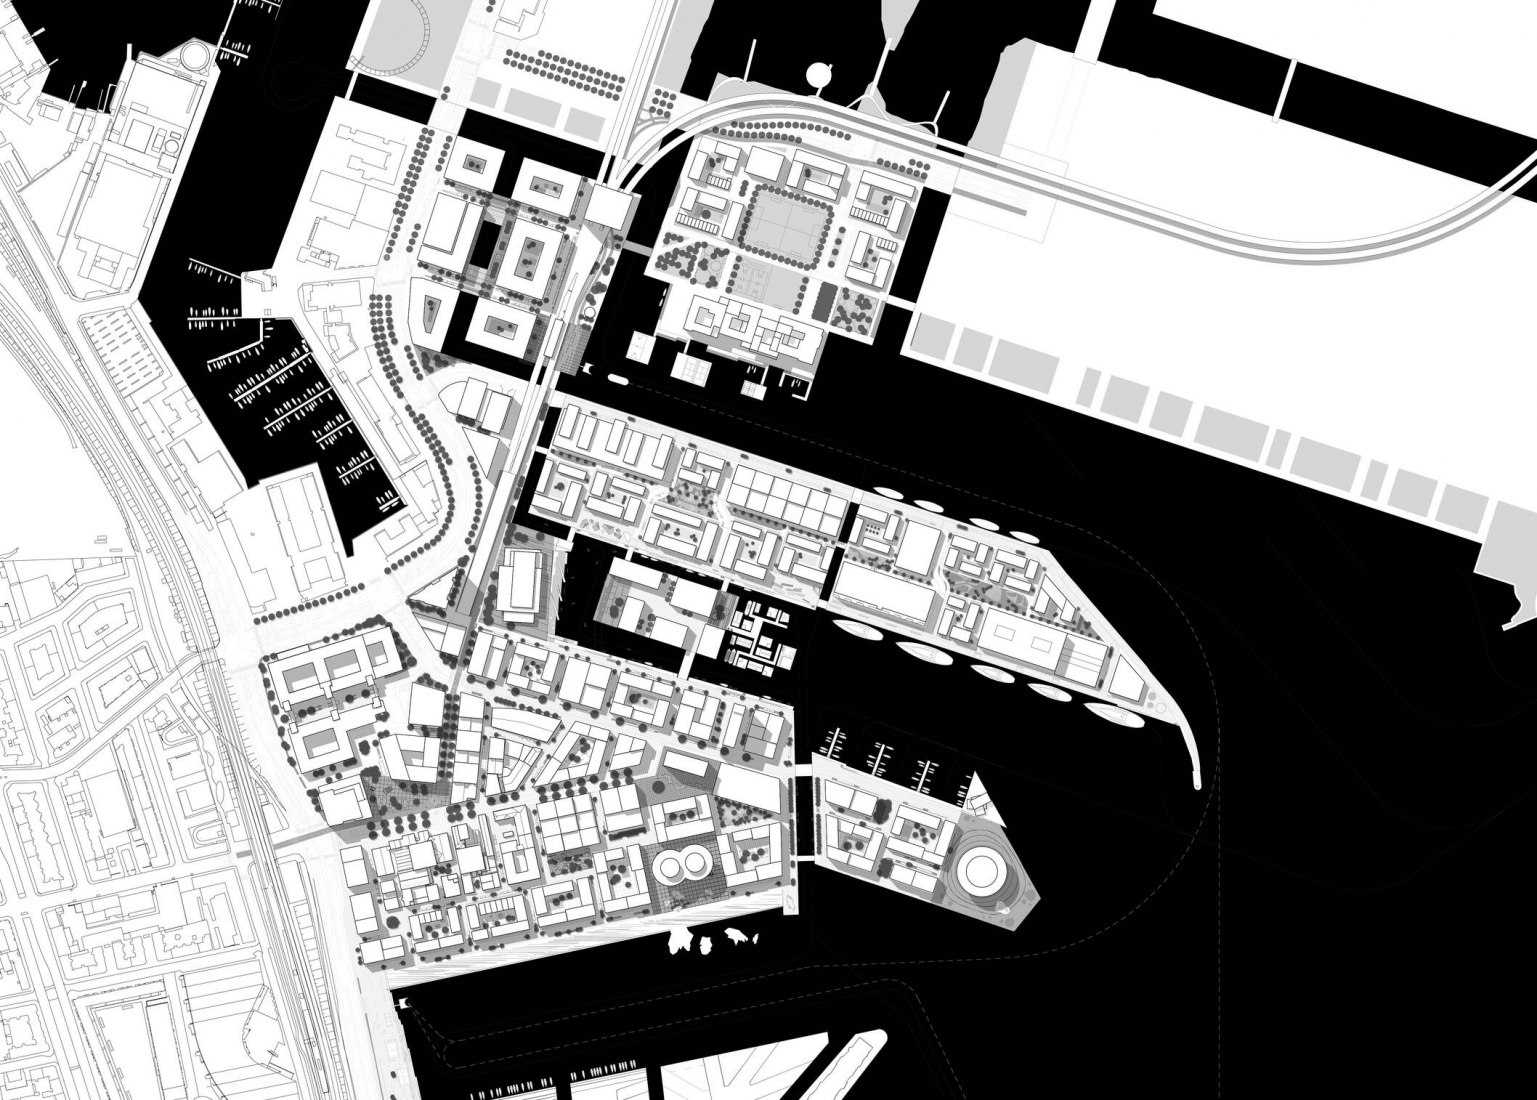 The structure plan from the winning 2008 competition proposal is the basis of the continuous development of the master plan. The plan envisions Nordhavn as an urban archipelago of small islands connected by pedestrian infrastructure and green elements.